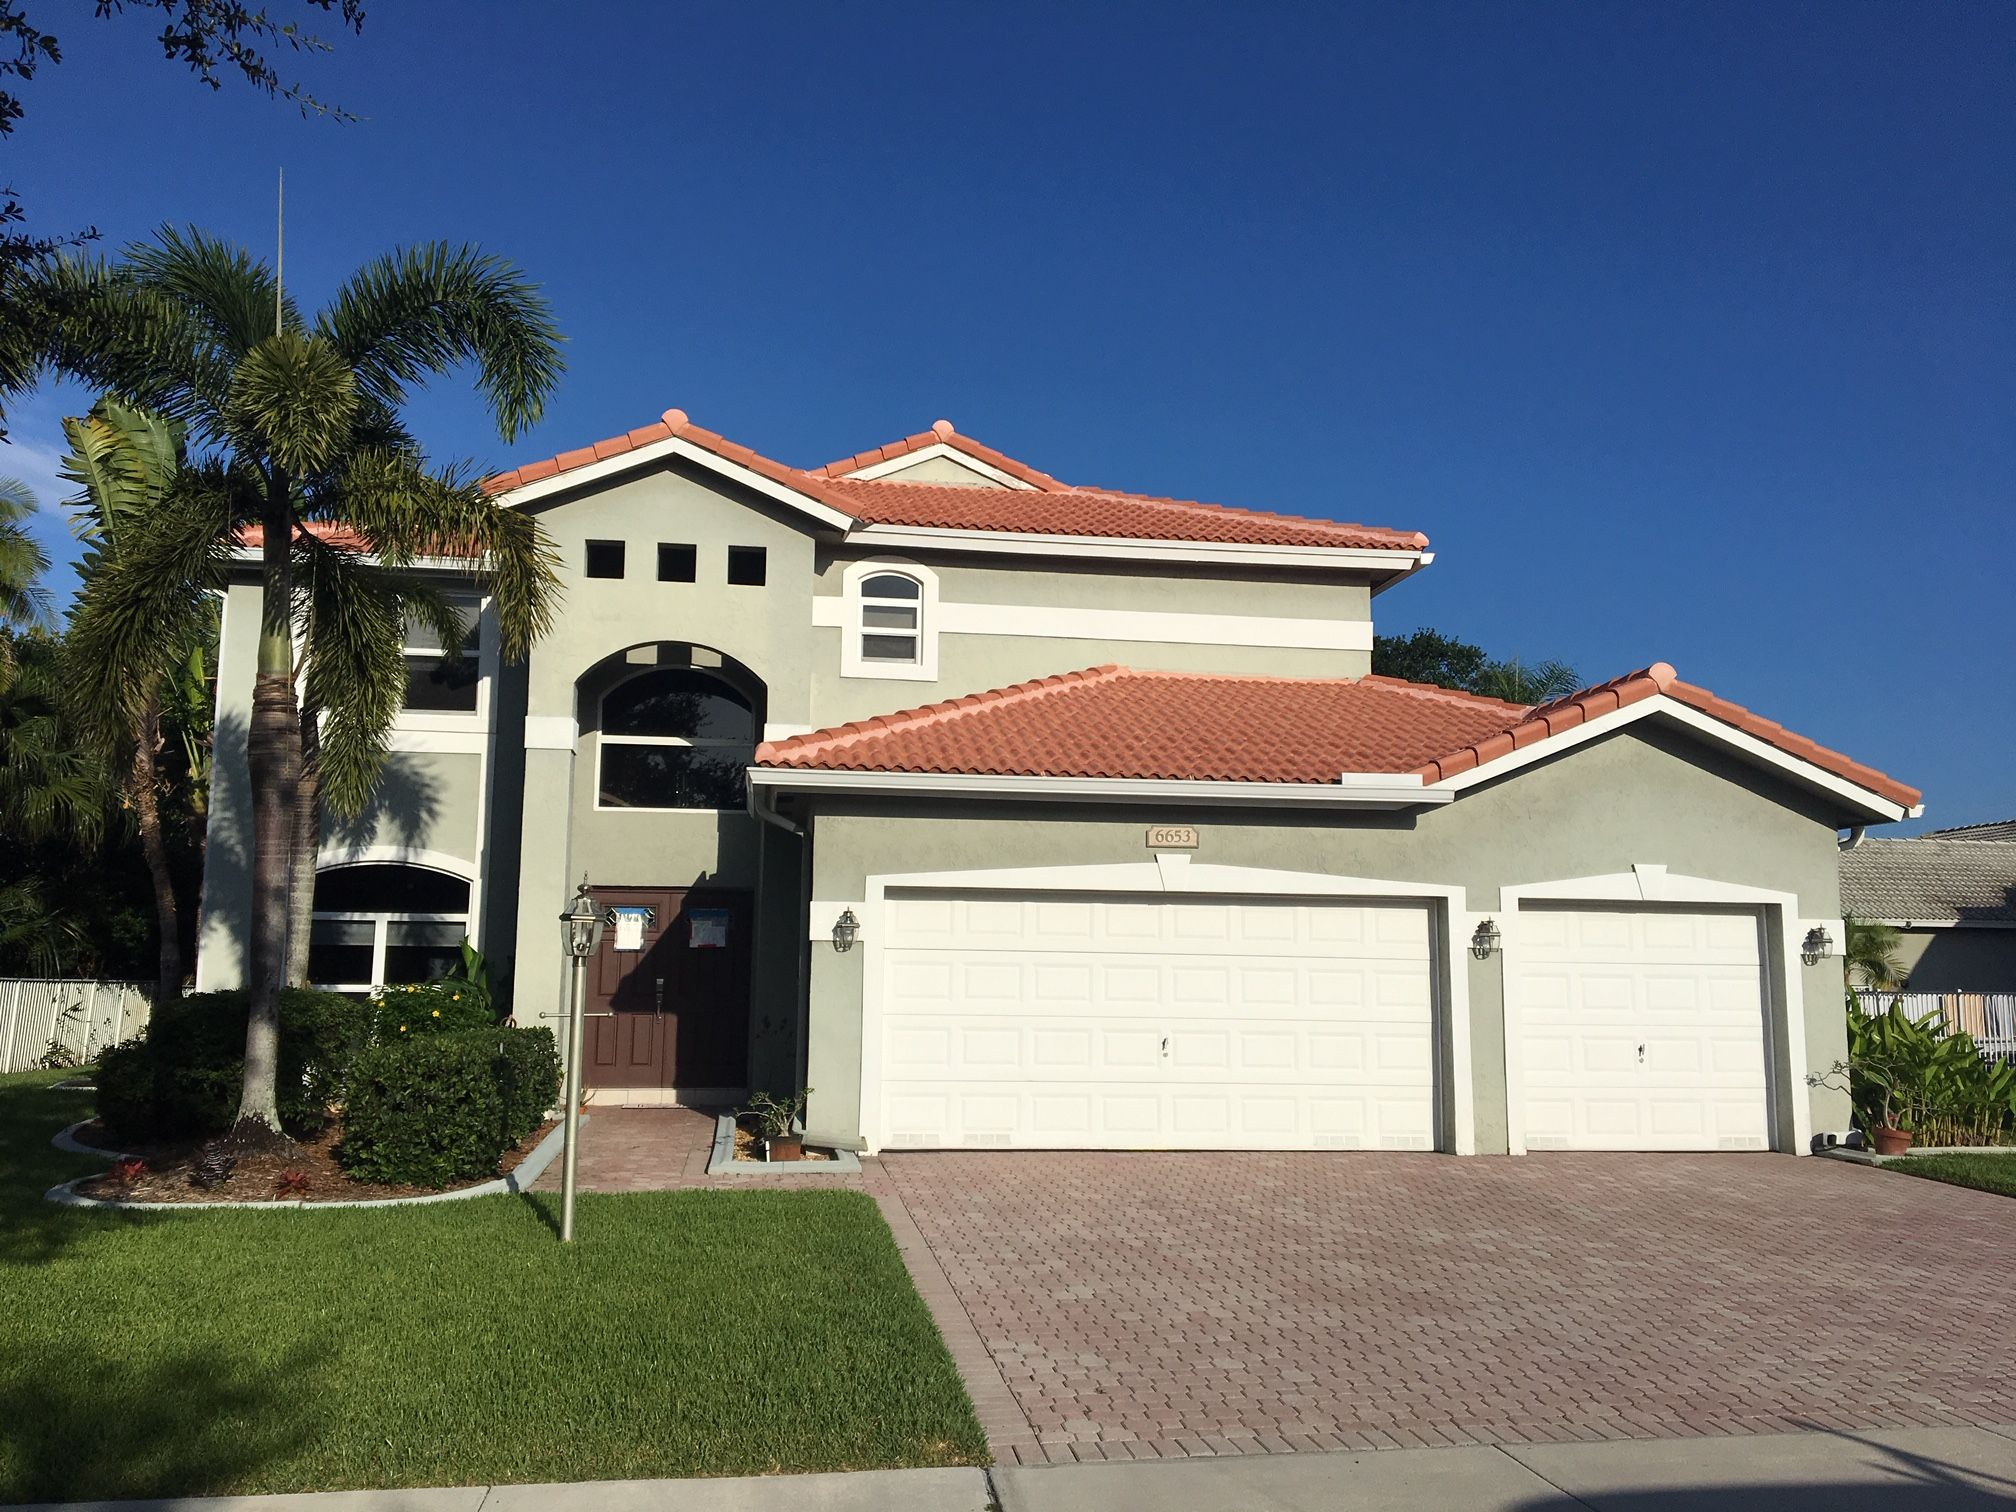 Best Boral Estate S Concrete Roof Tile In Salmon Color Southfloridaroofing Boralrooftiles 400 x 300